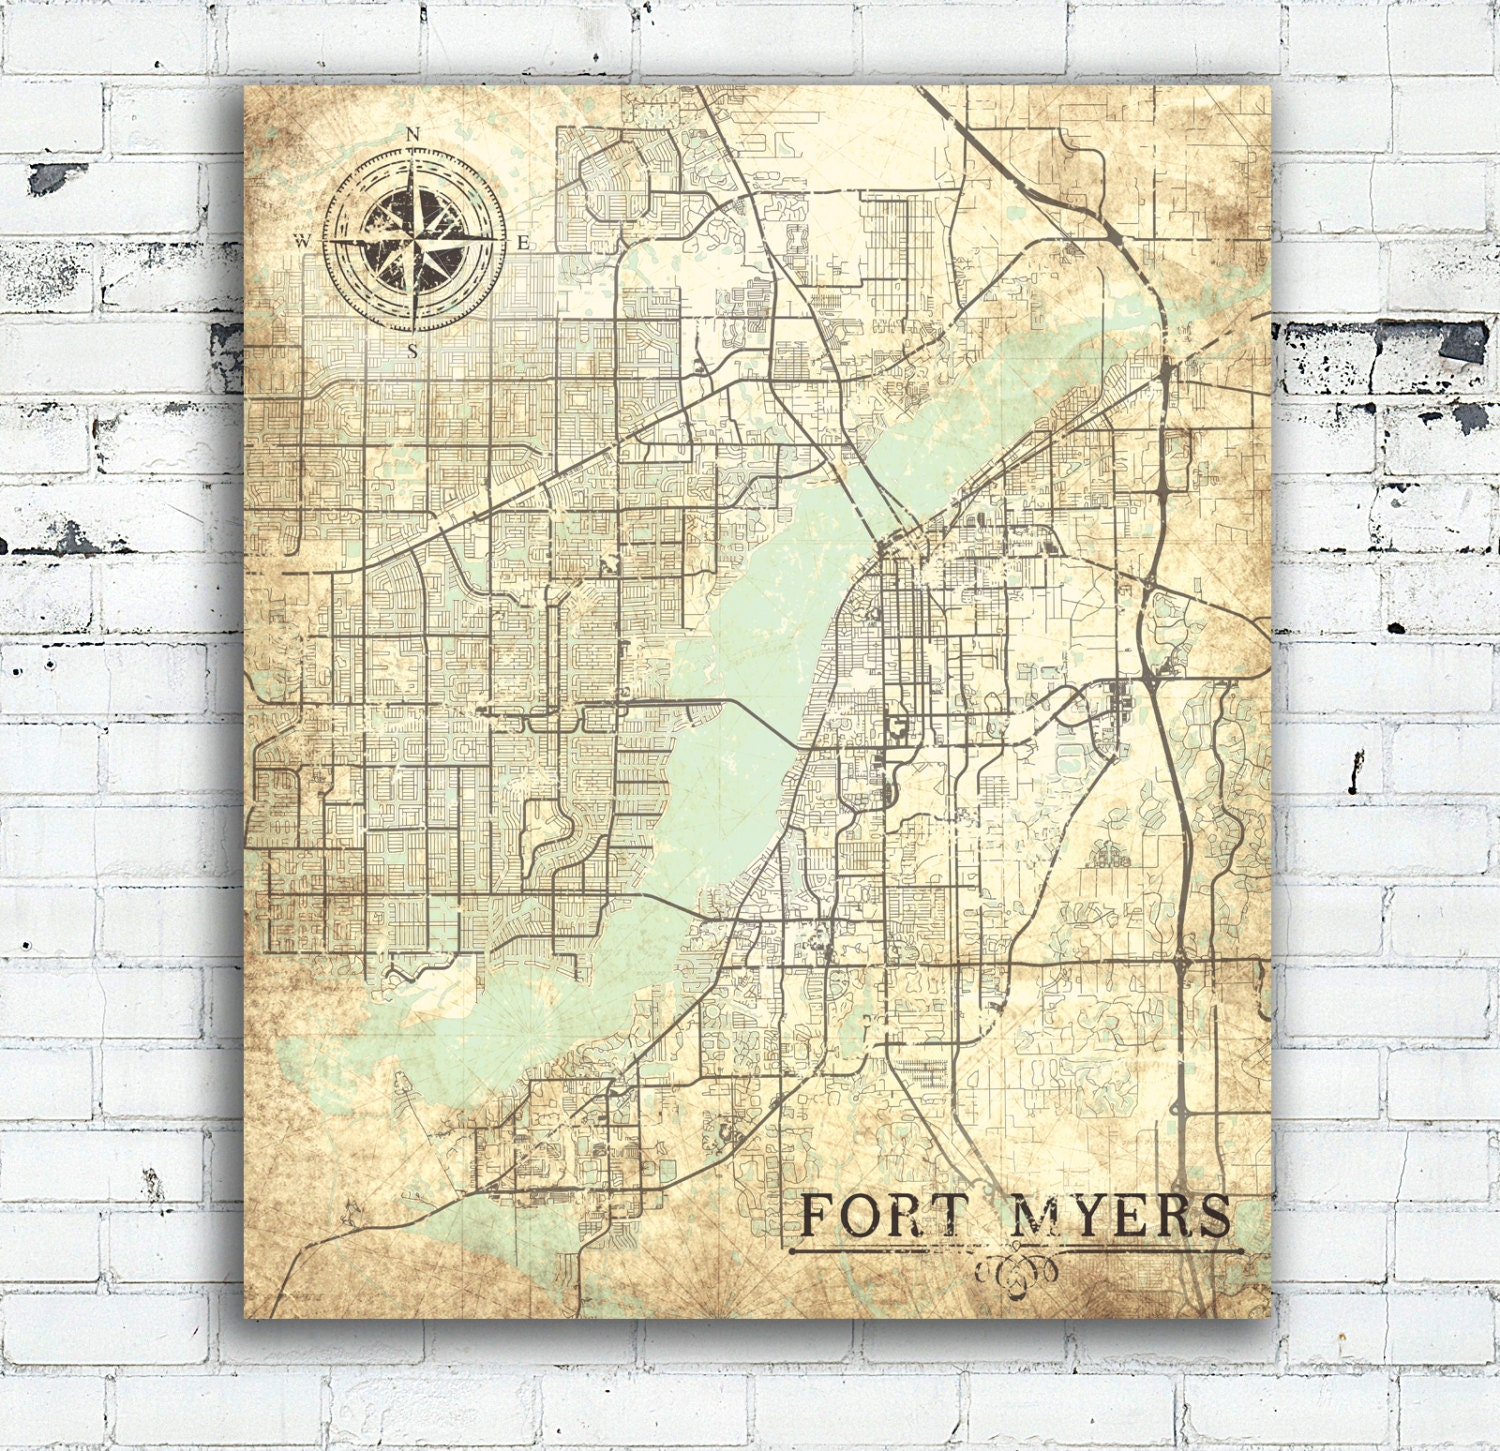 Fort Myers Florida Etsy - Florida map ft myers